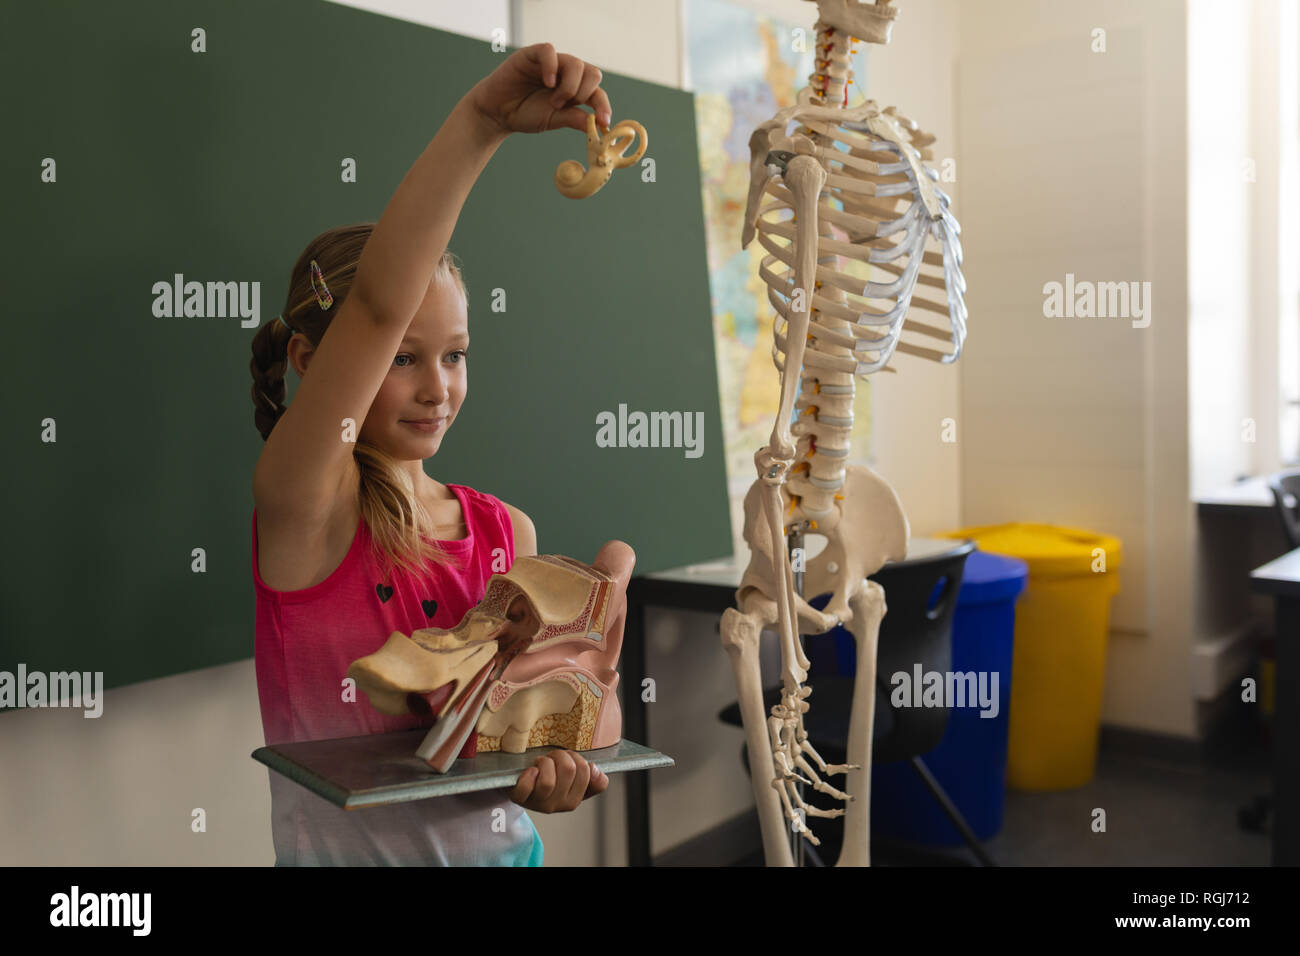 Side view of schoolgirl explaining anatomical model in classroom - Stock Image